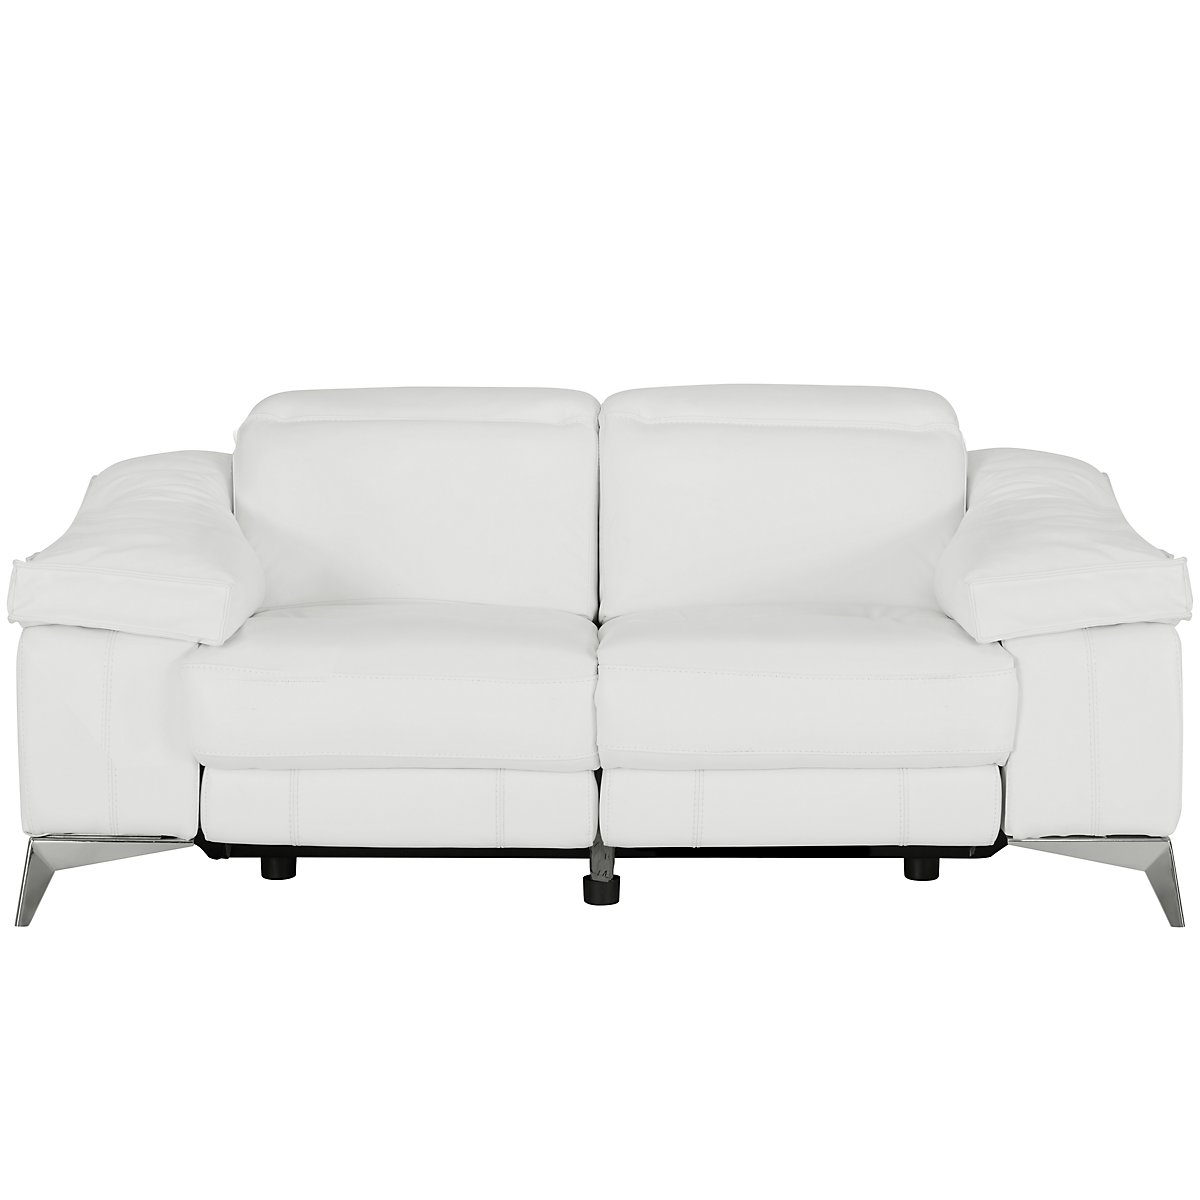 city furniture luca white leather  vinyl power reclining loveseat - luca white leather  vinyl power reclining loveseat